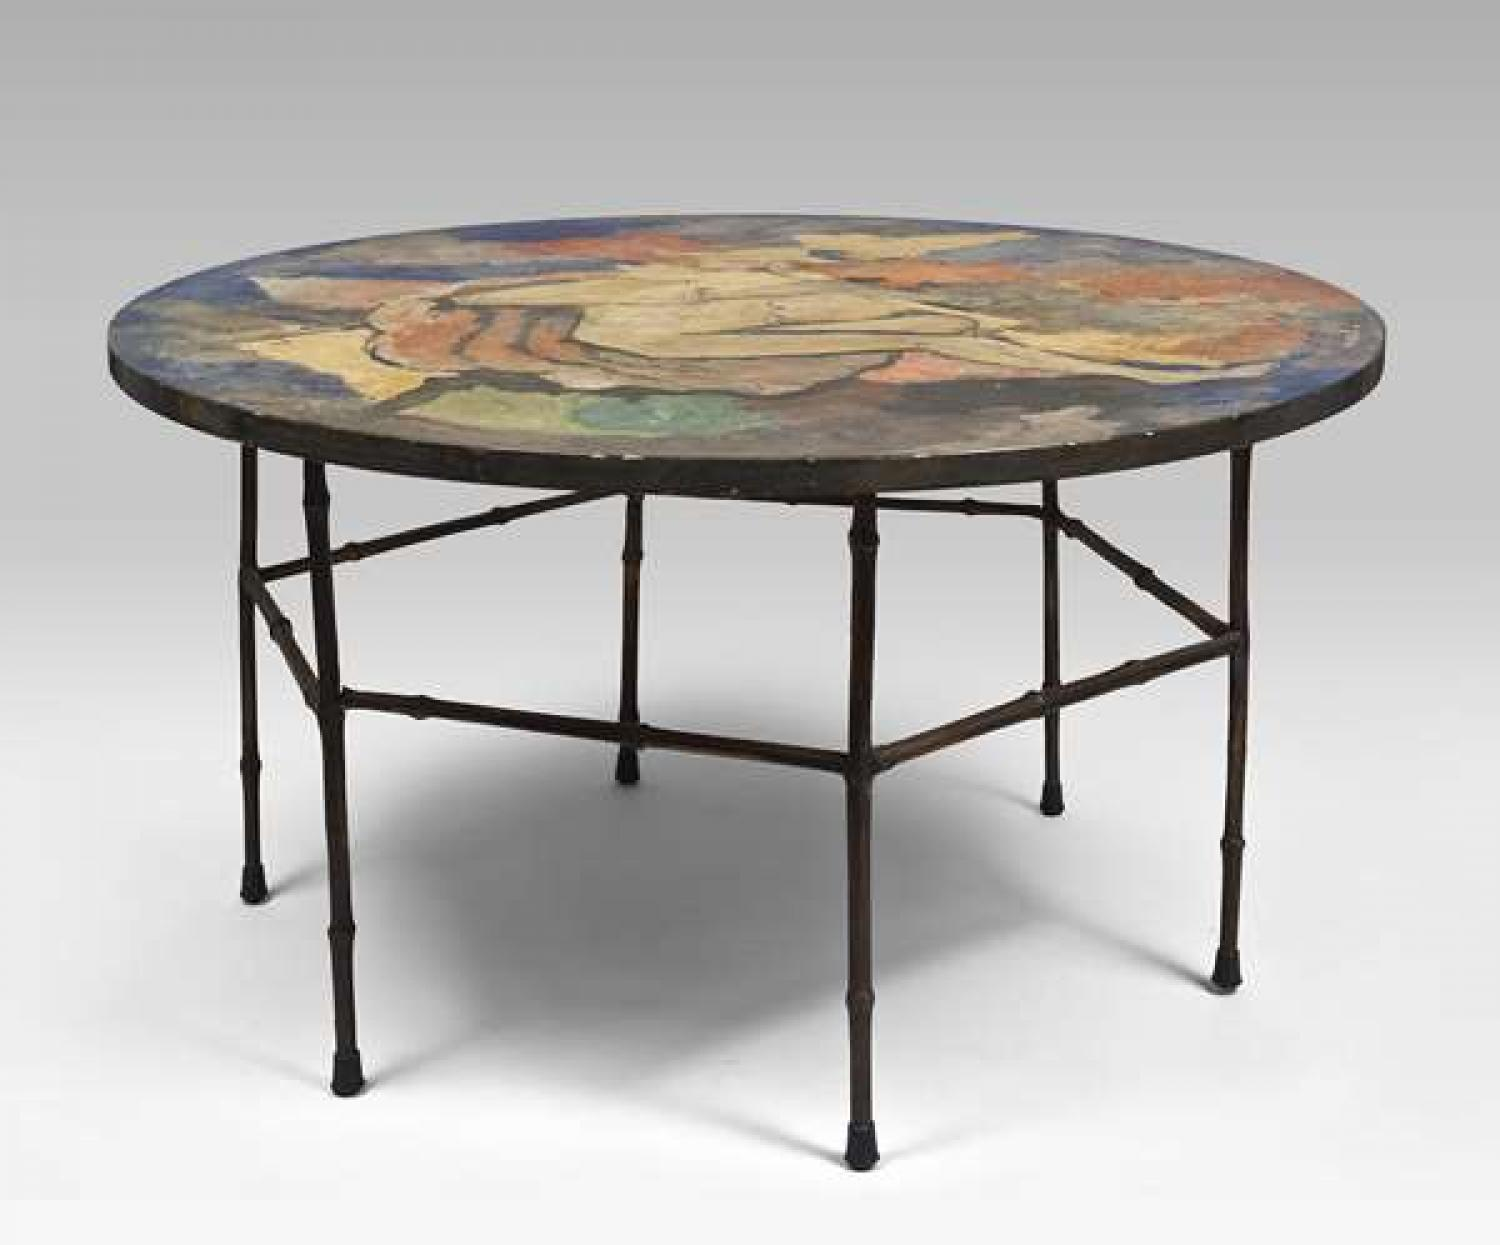 R mariani painted coffee table in coffee tables Painted coffee table